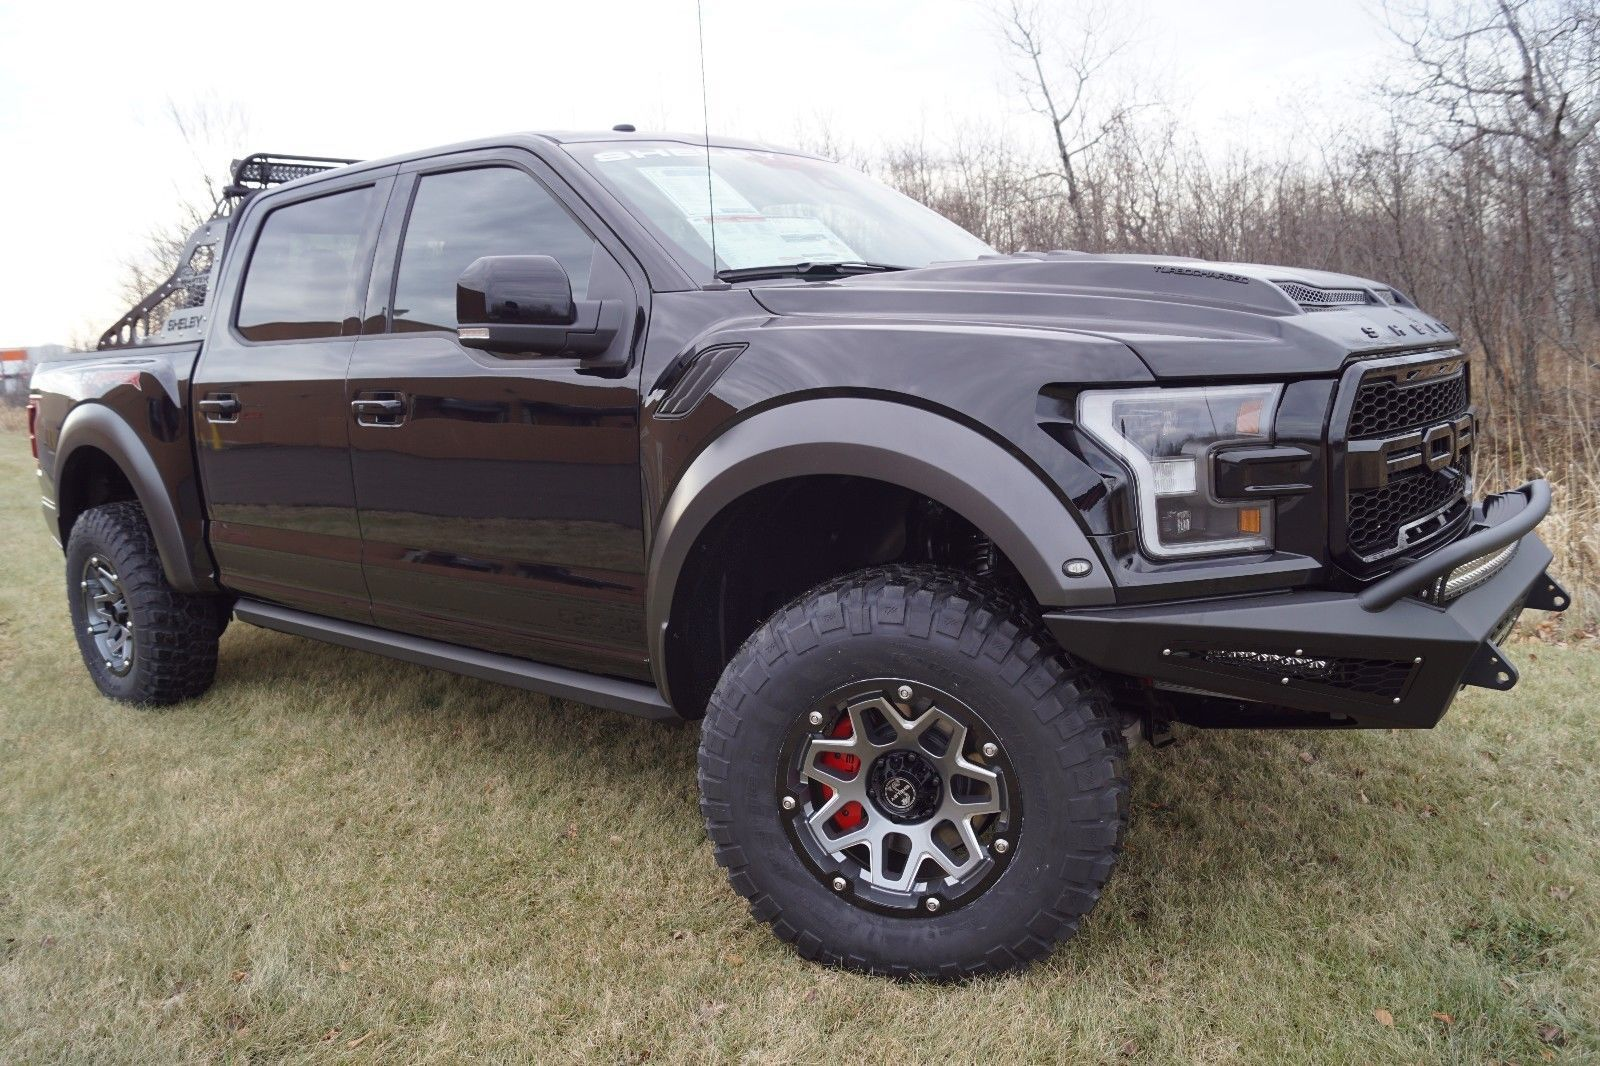 Strong Beast 2018 Ford F 150 Shelby Baja Raptor 525 Hp Lifted Raptor Ford Raptor Shelby Ford F150